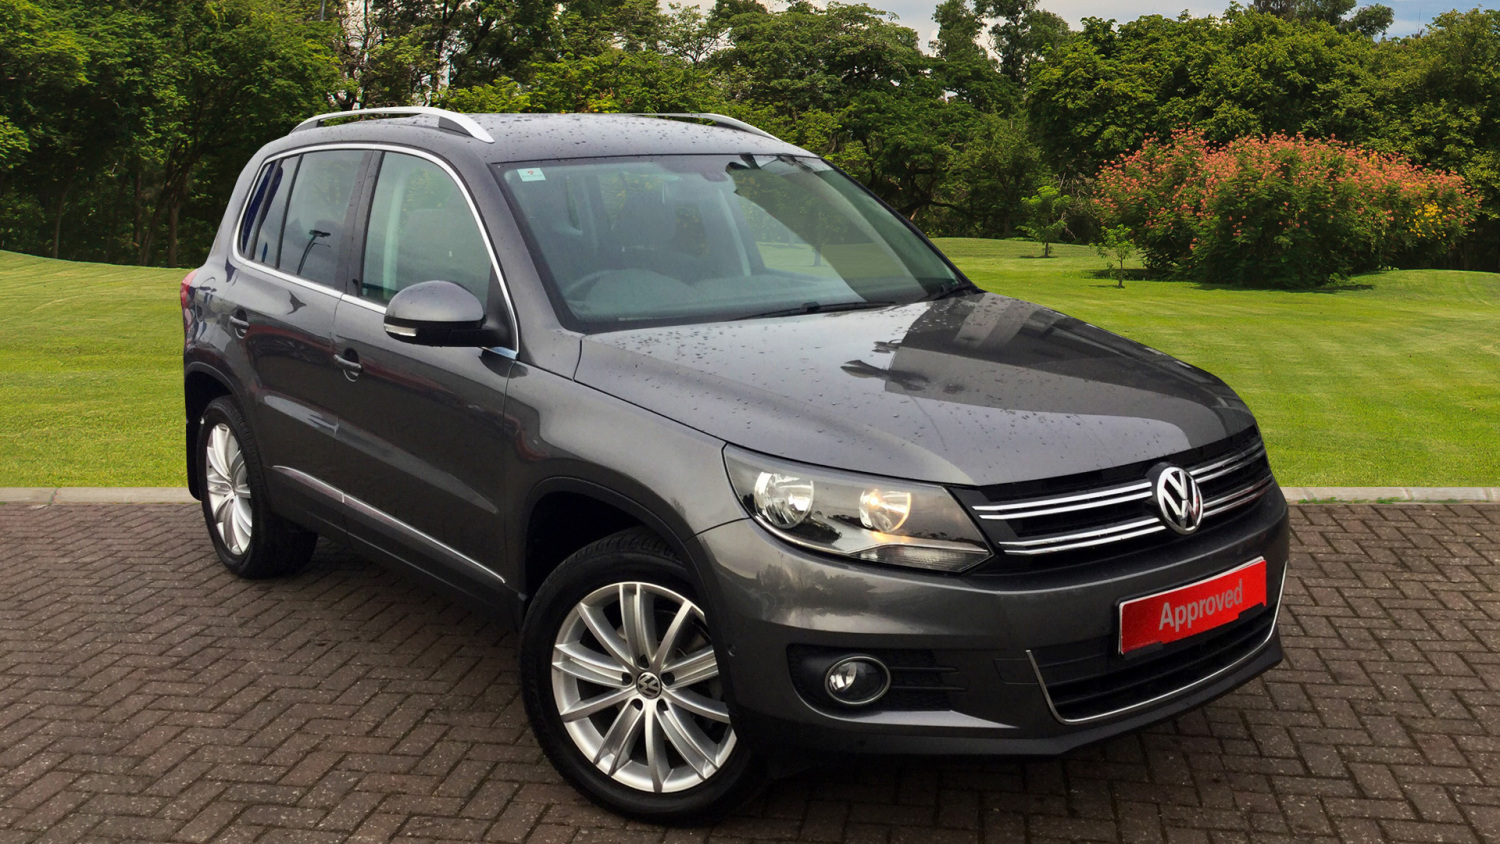 used volkswagen tiguan 2 0 tdi bluemotion tech match edition 150 5dr dsg diesel estate for sale. Black Bedroom Furniture Sets. Home Design Ideas